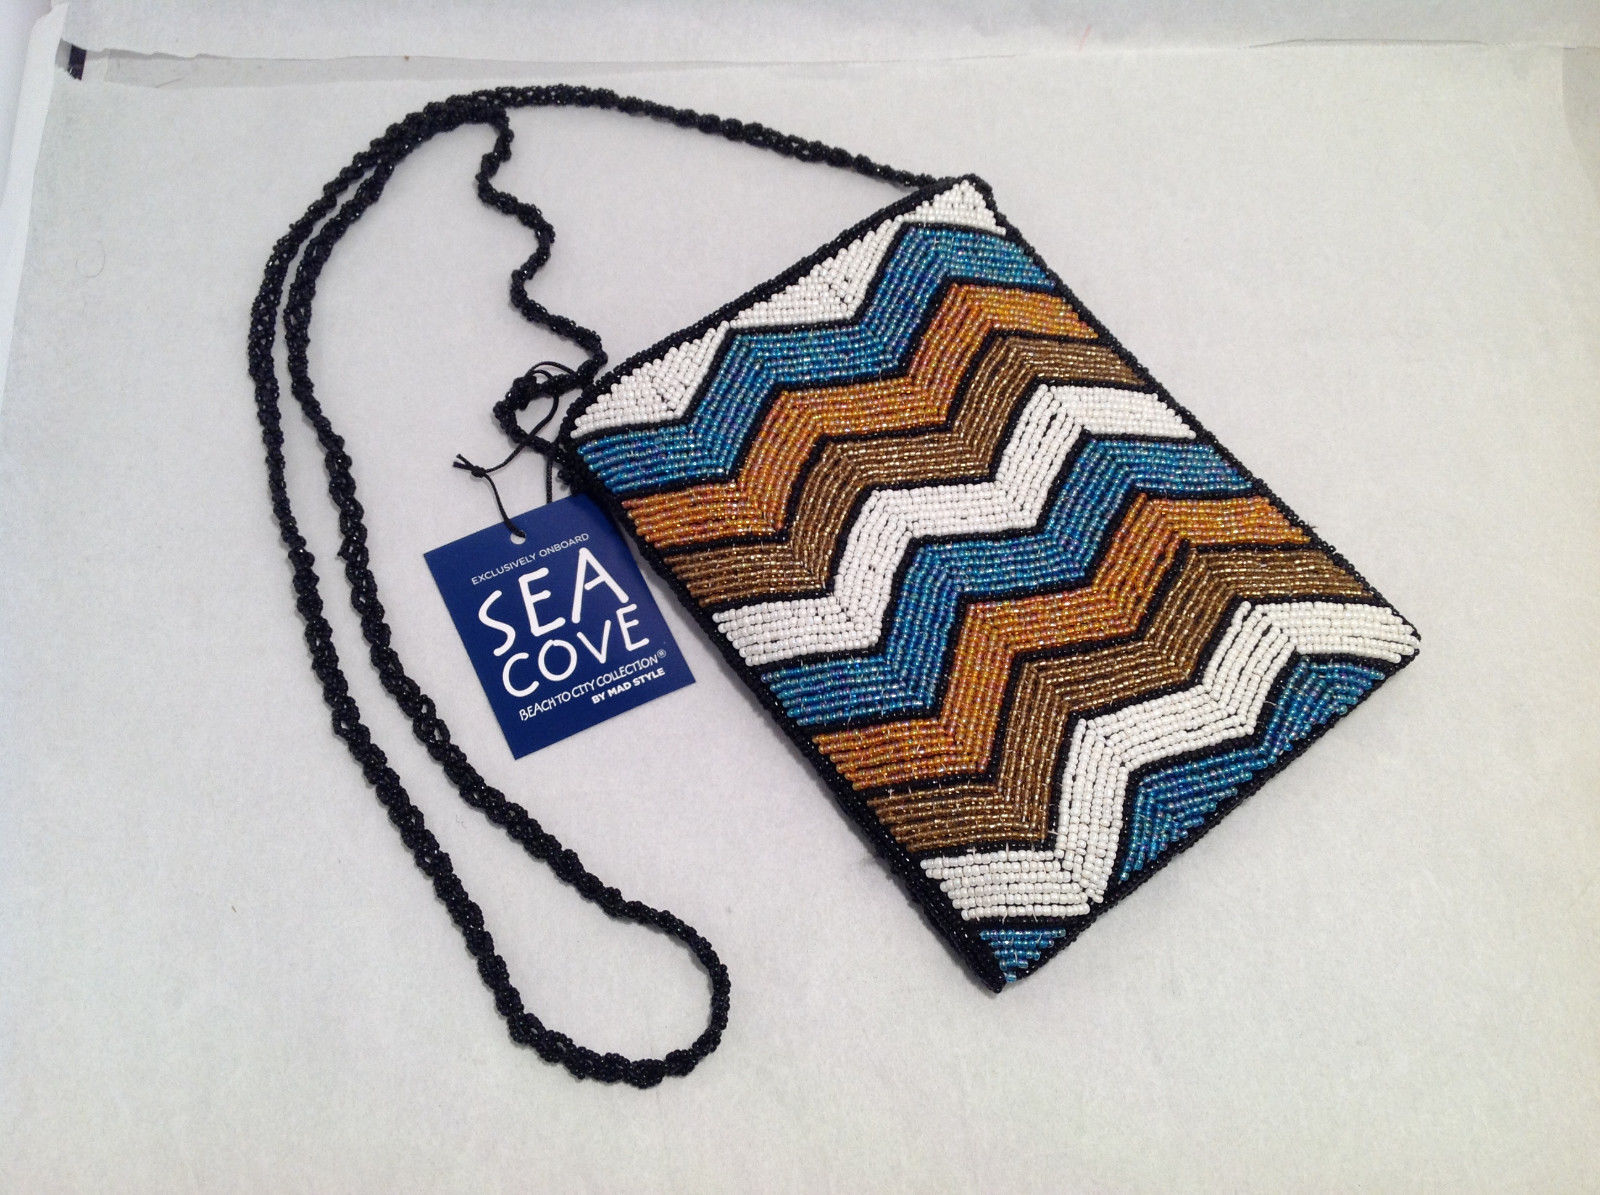 Sea Cove Mad Style Women's Beaded Purse White Blue Brown Chevron Black Crochet